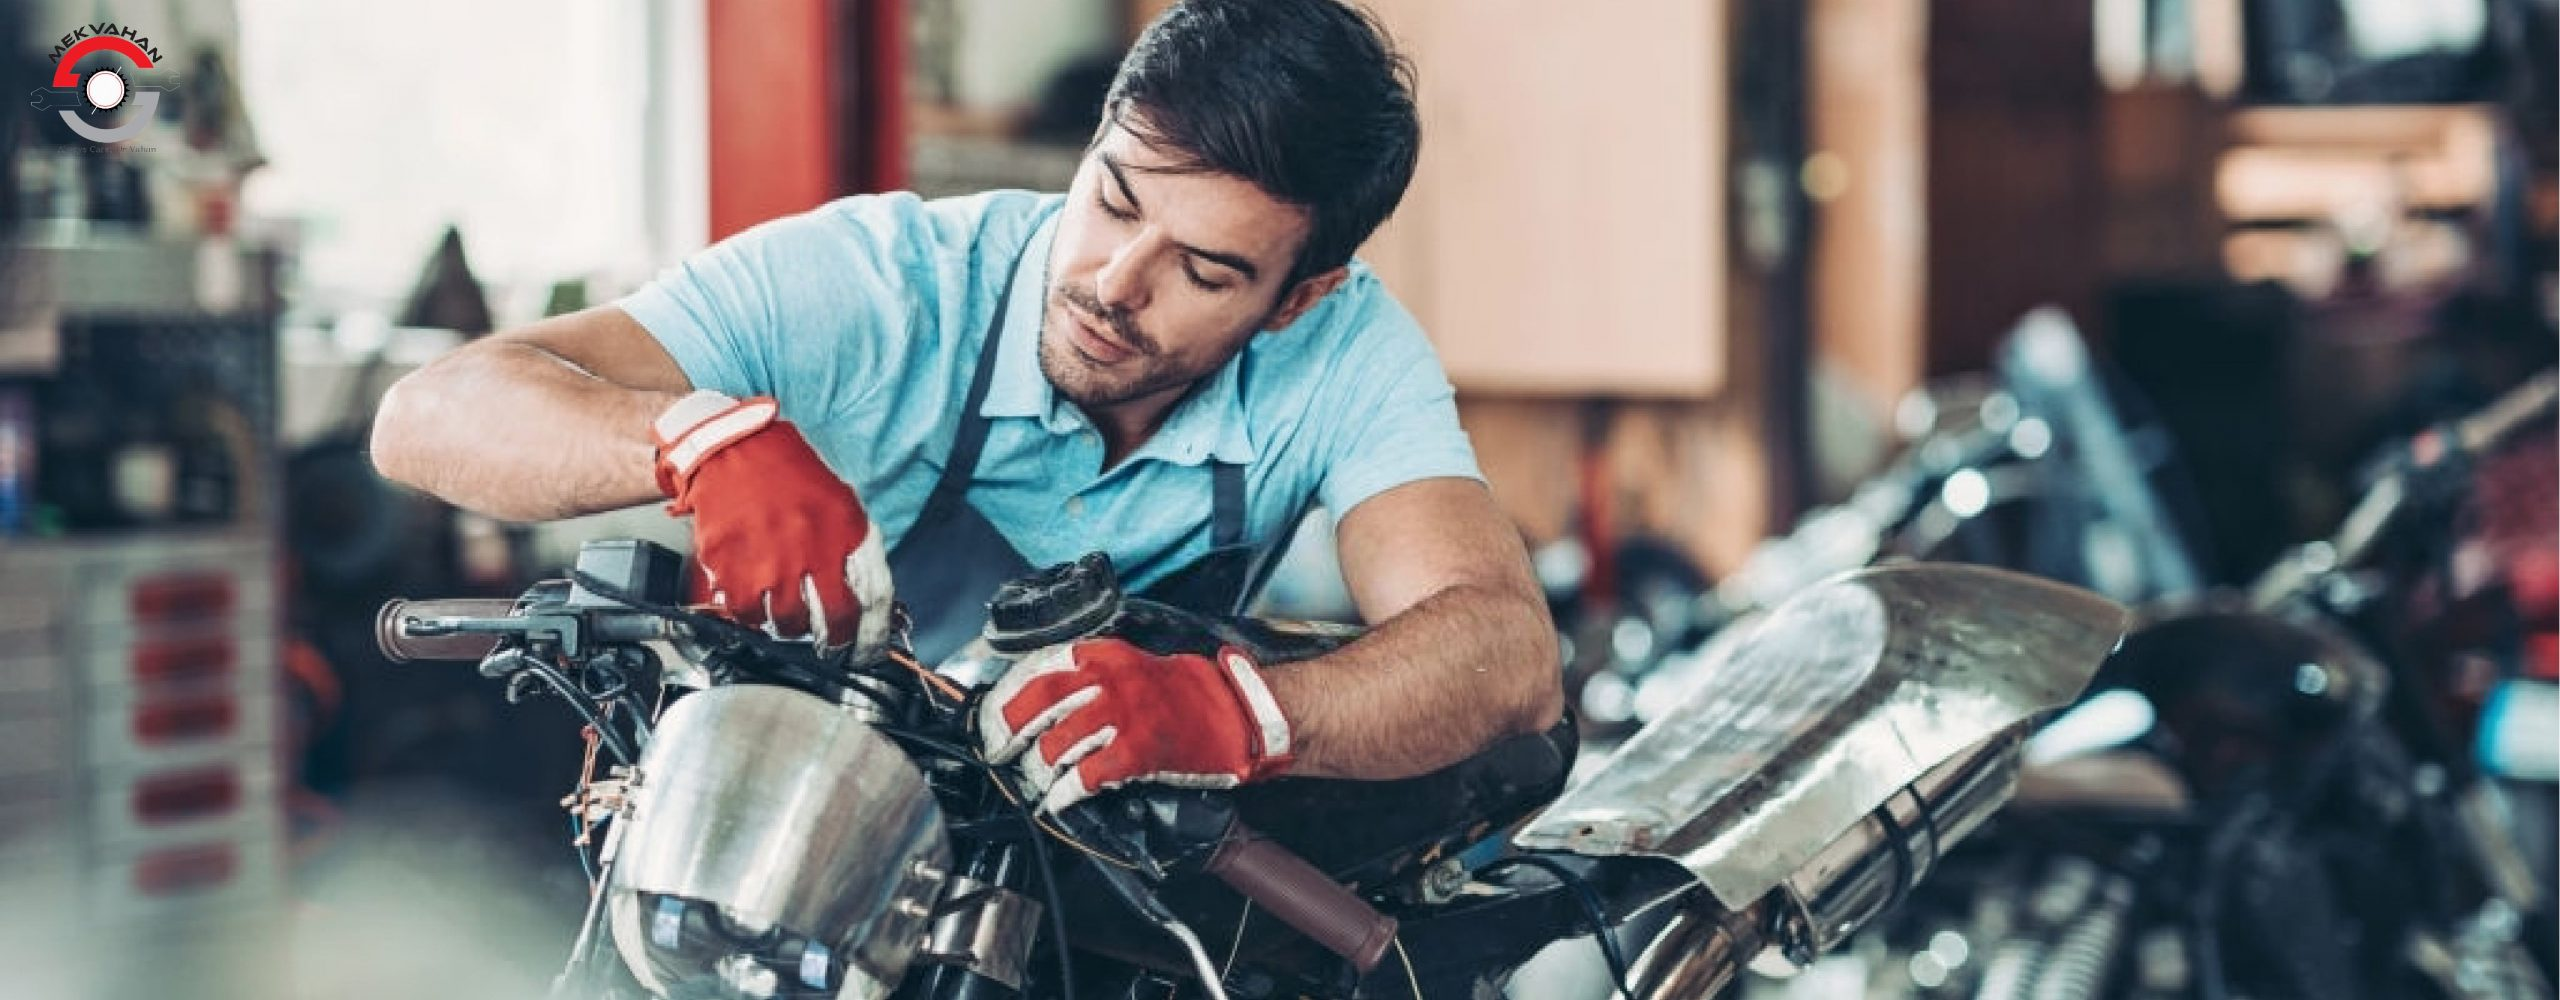 10 things to do before submitting your bike for service